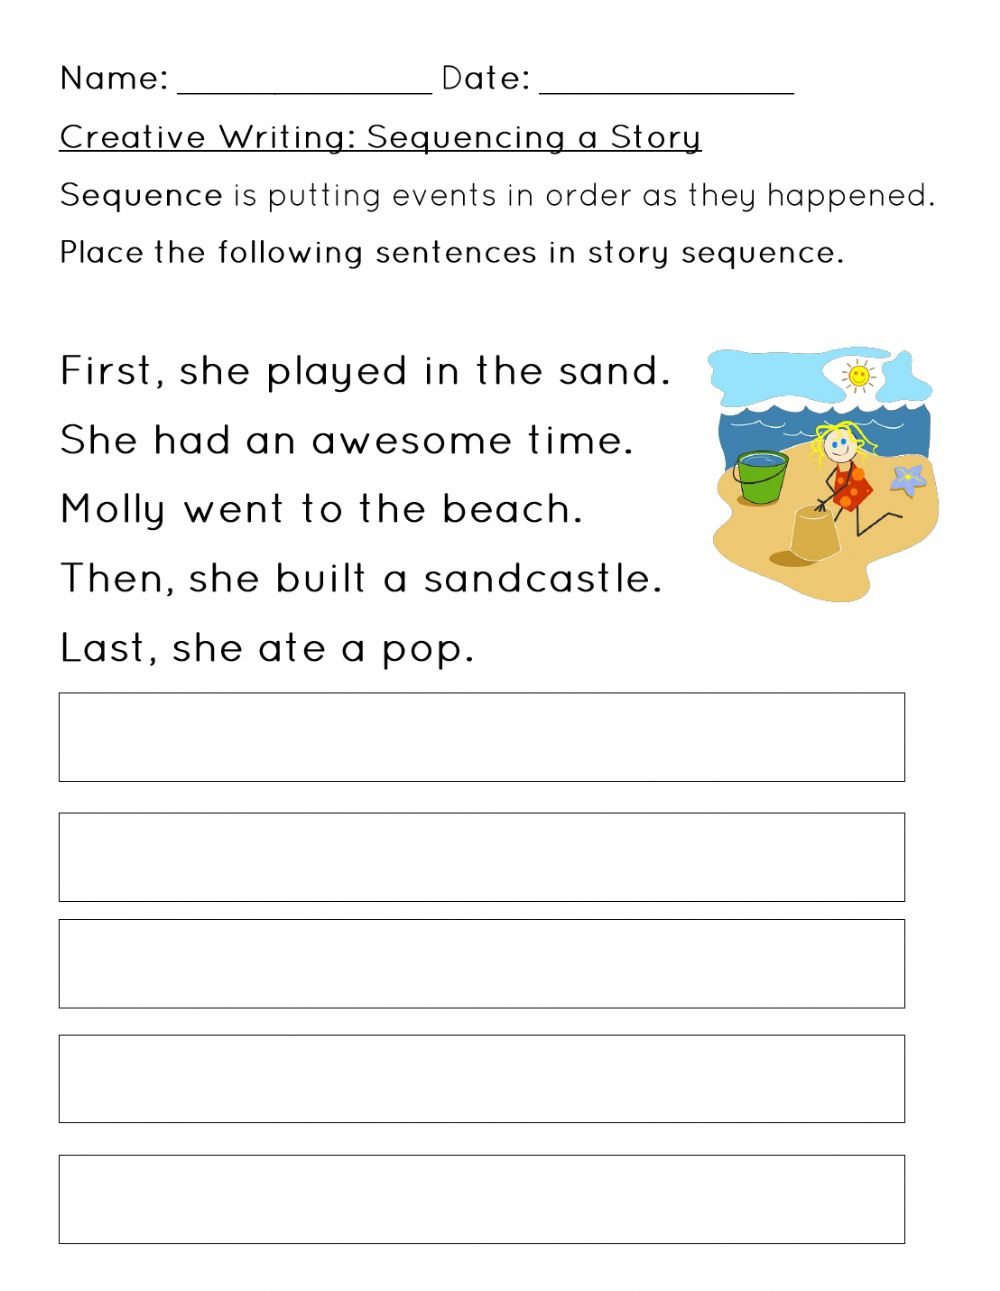 medium resolution of Sequencing a Story Worksheet 2 worksheet